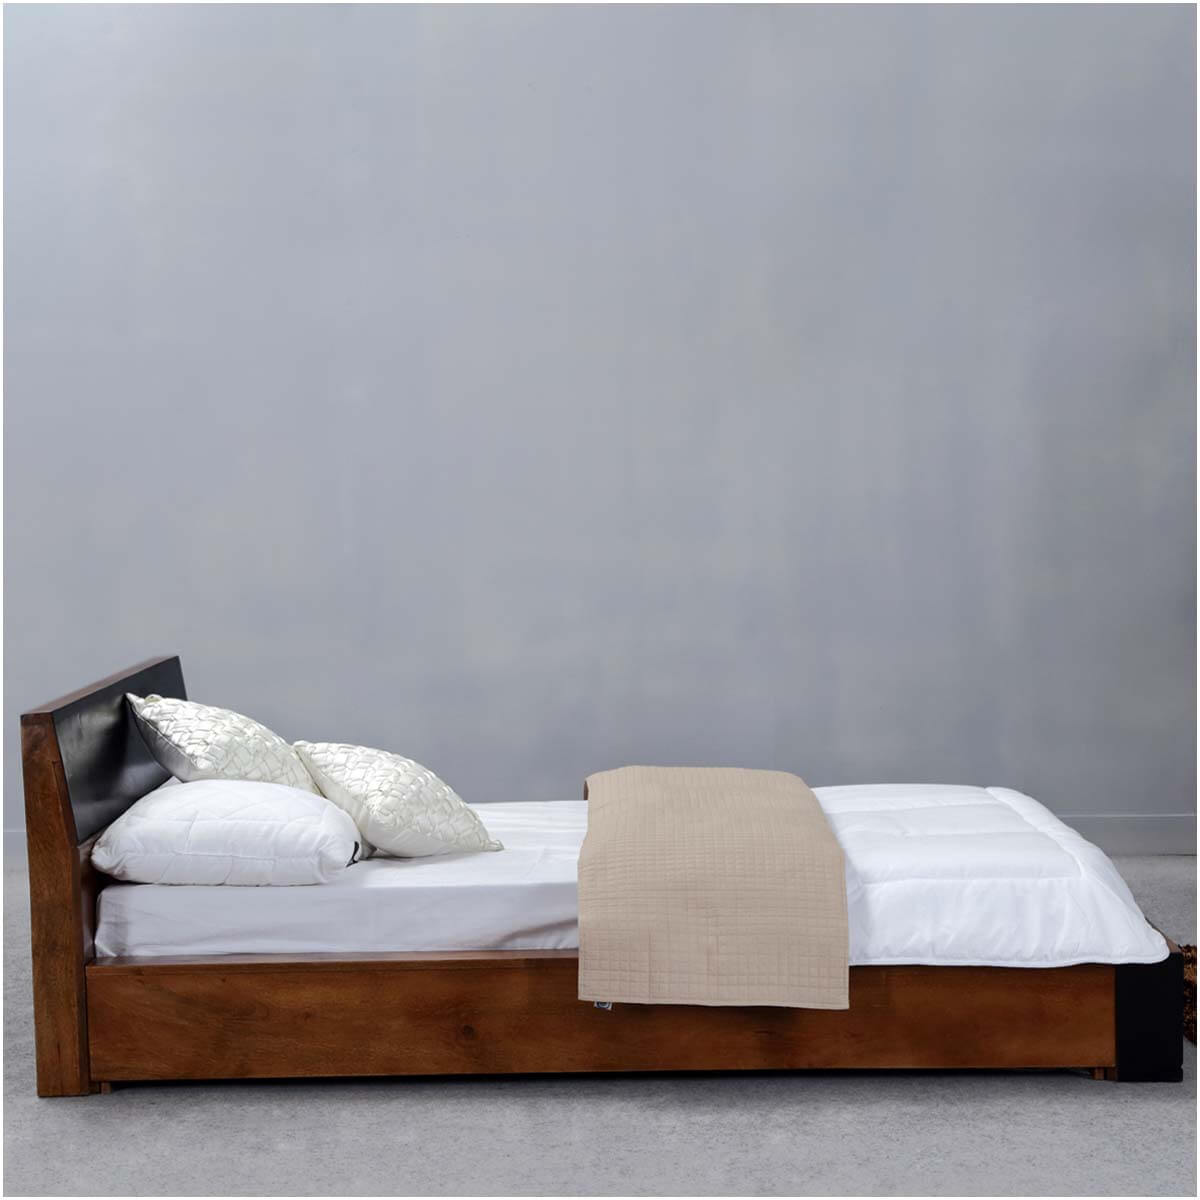 Modern simplicity mango wood floor frame platform bed w for Floor bed frame